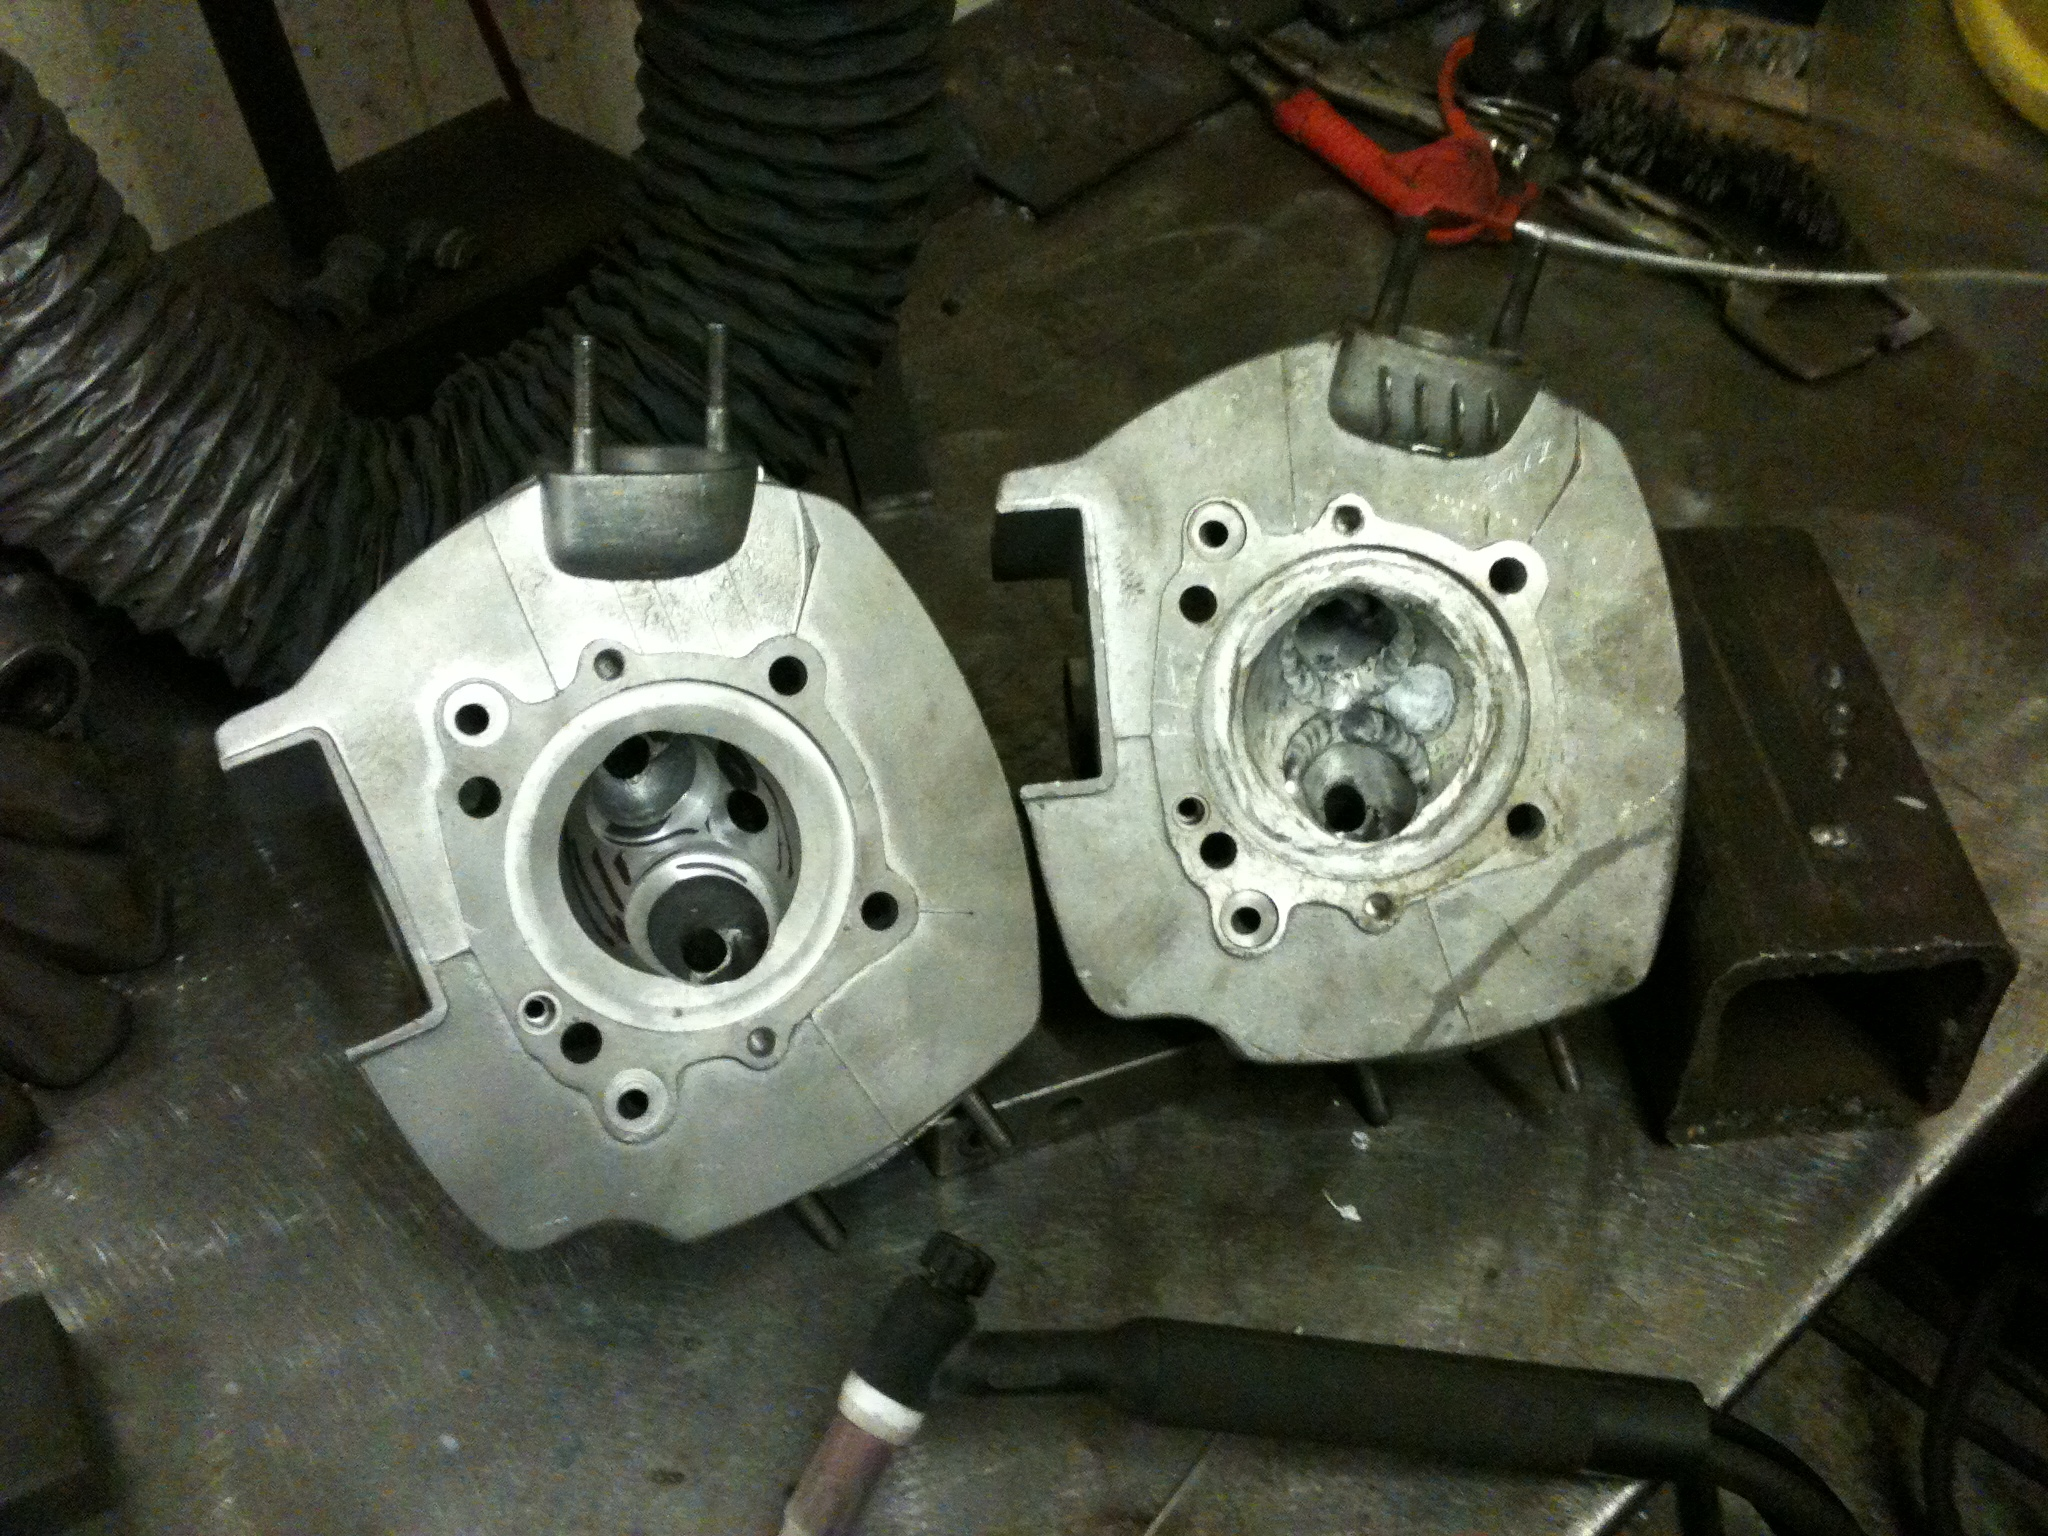 Welding Cylinder Heads : Specialist welding service london surrey the south east